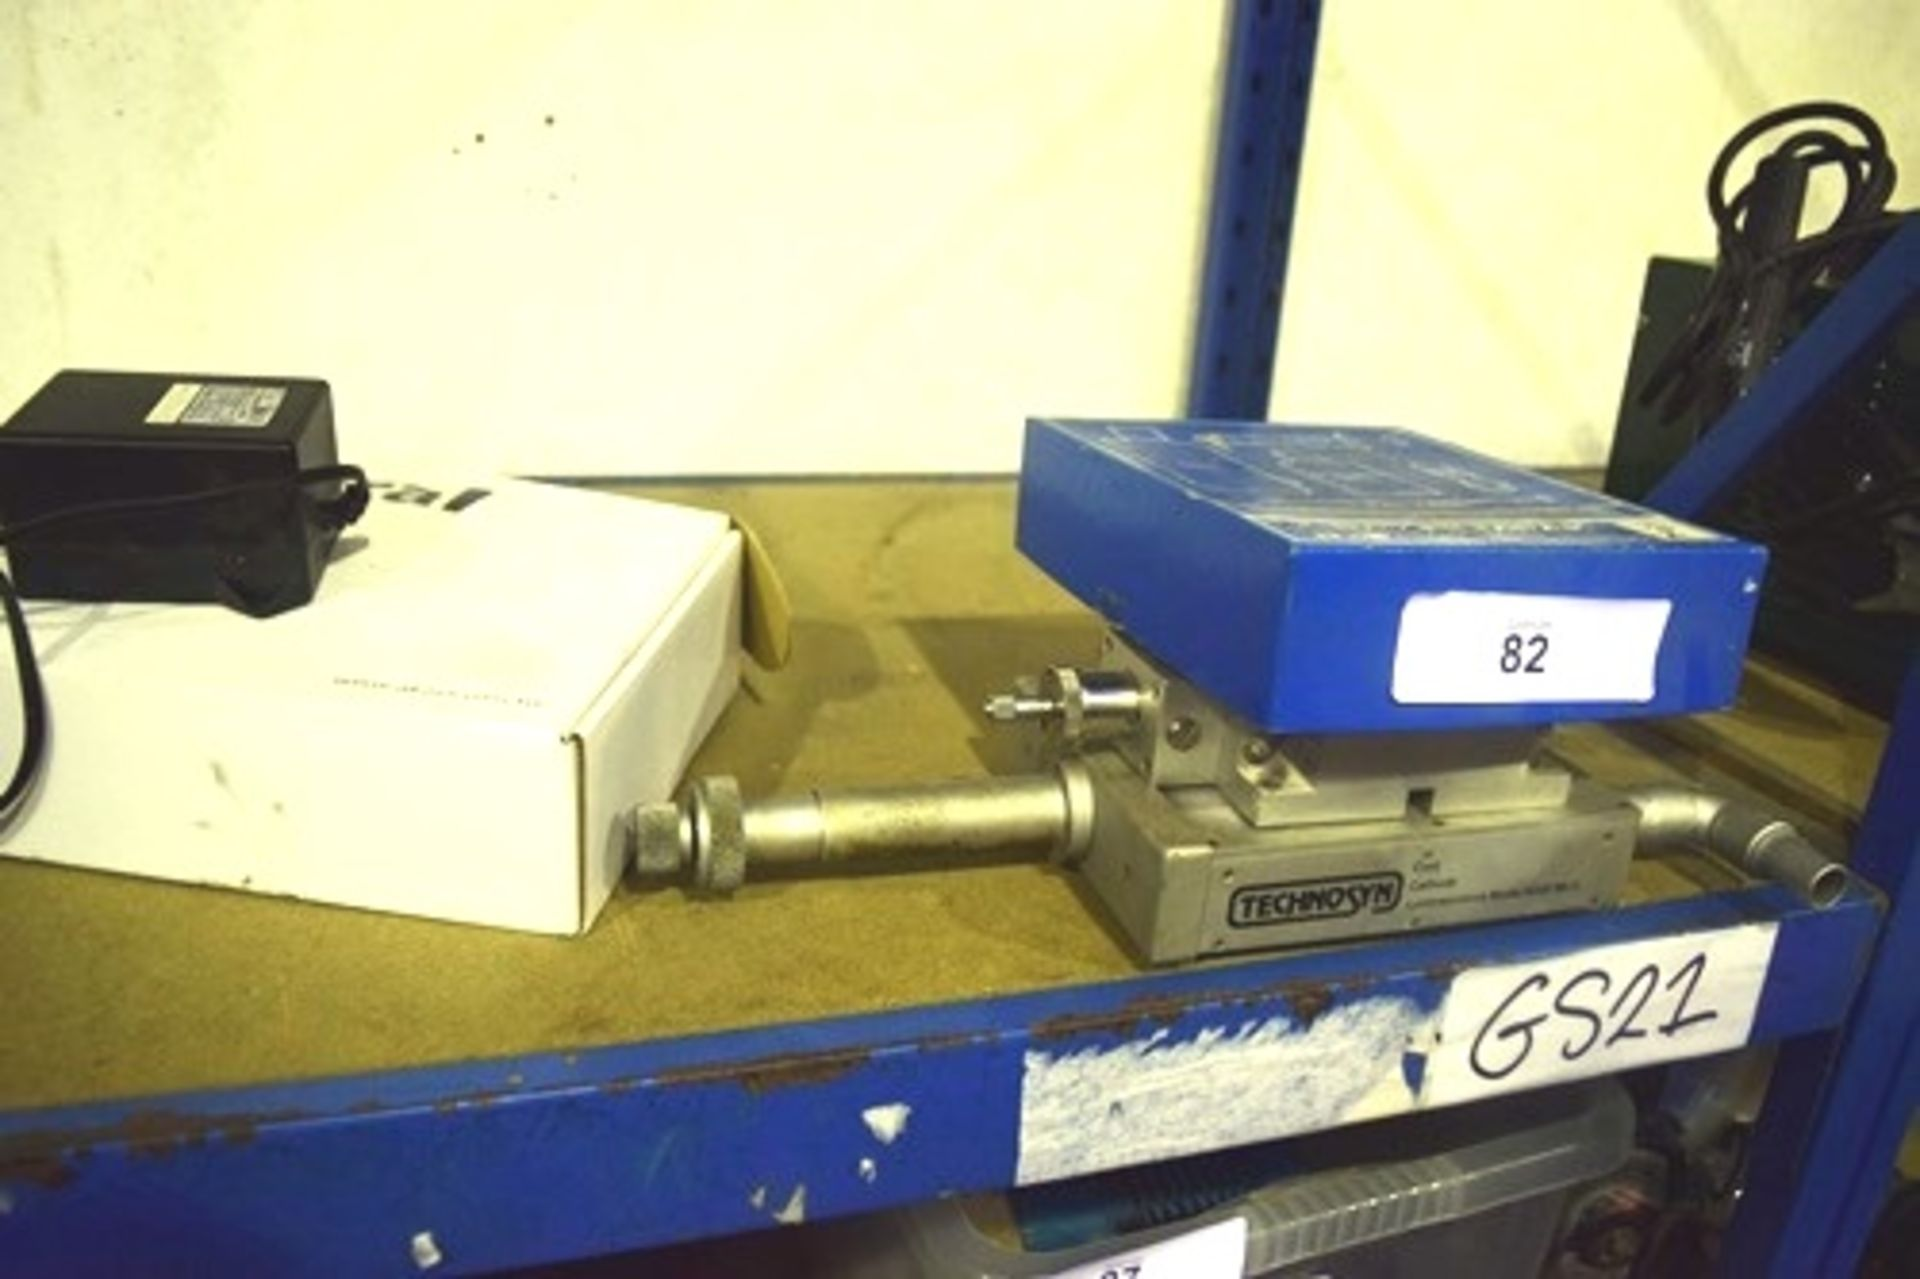 Lot 82 - Technopsyn cold cathode luminescence KDG pressure switch, Leybold Tectronix T200 etc. (GS21)